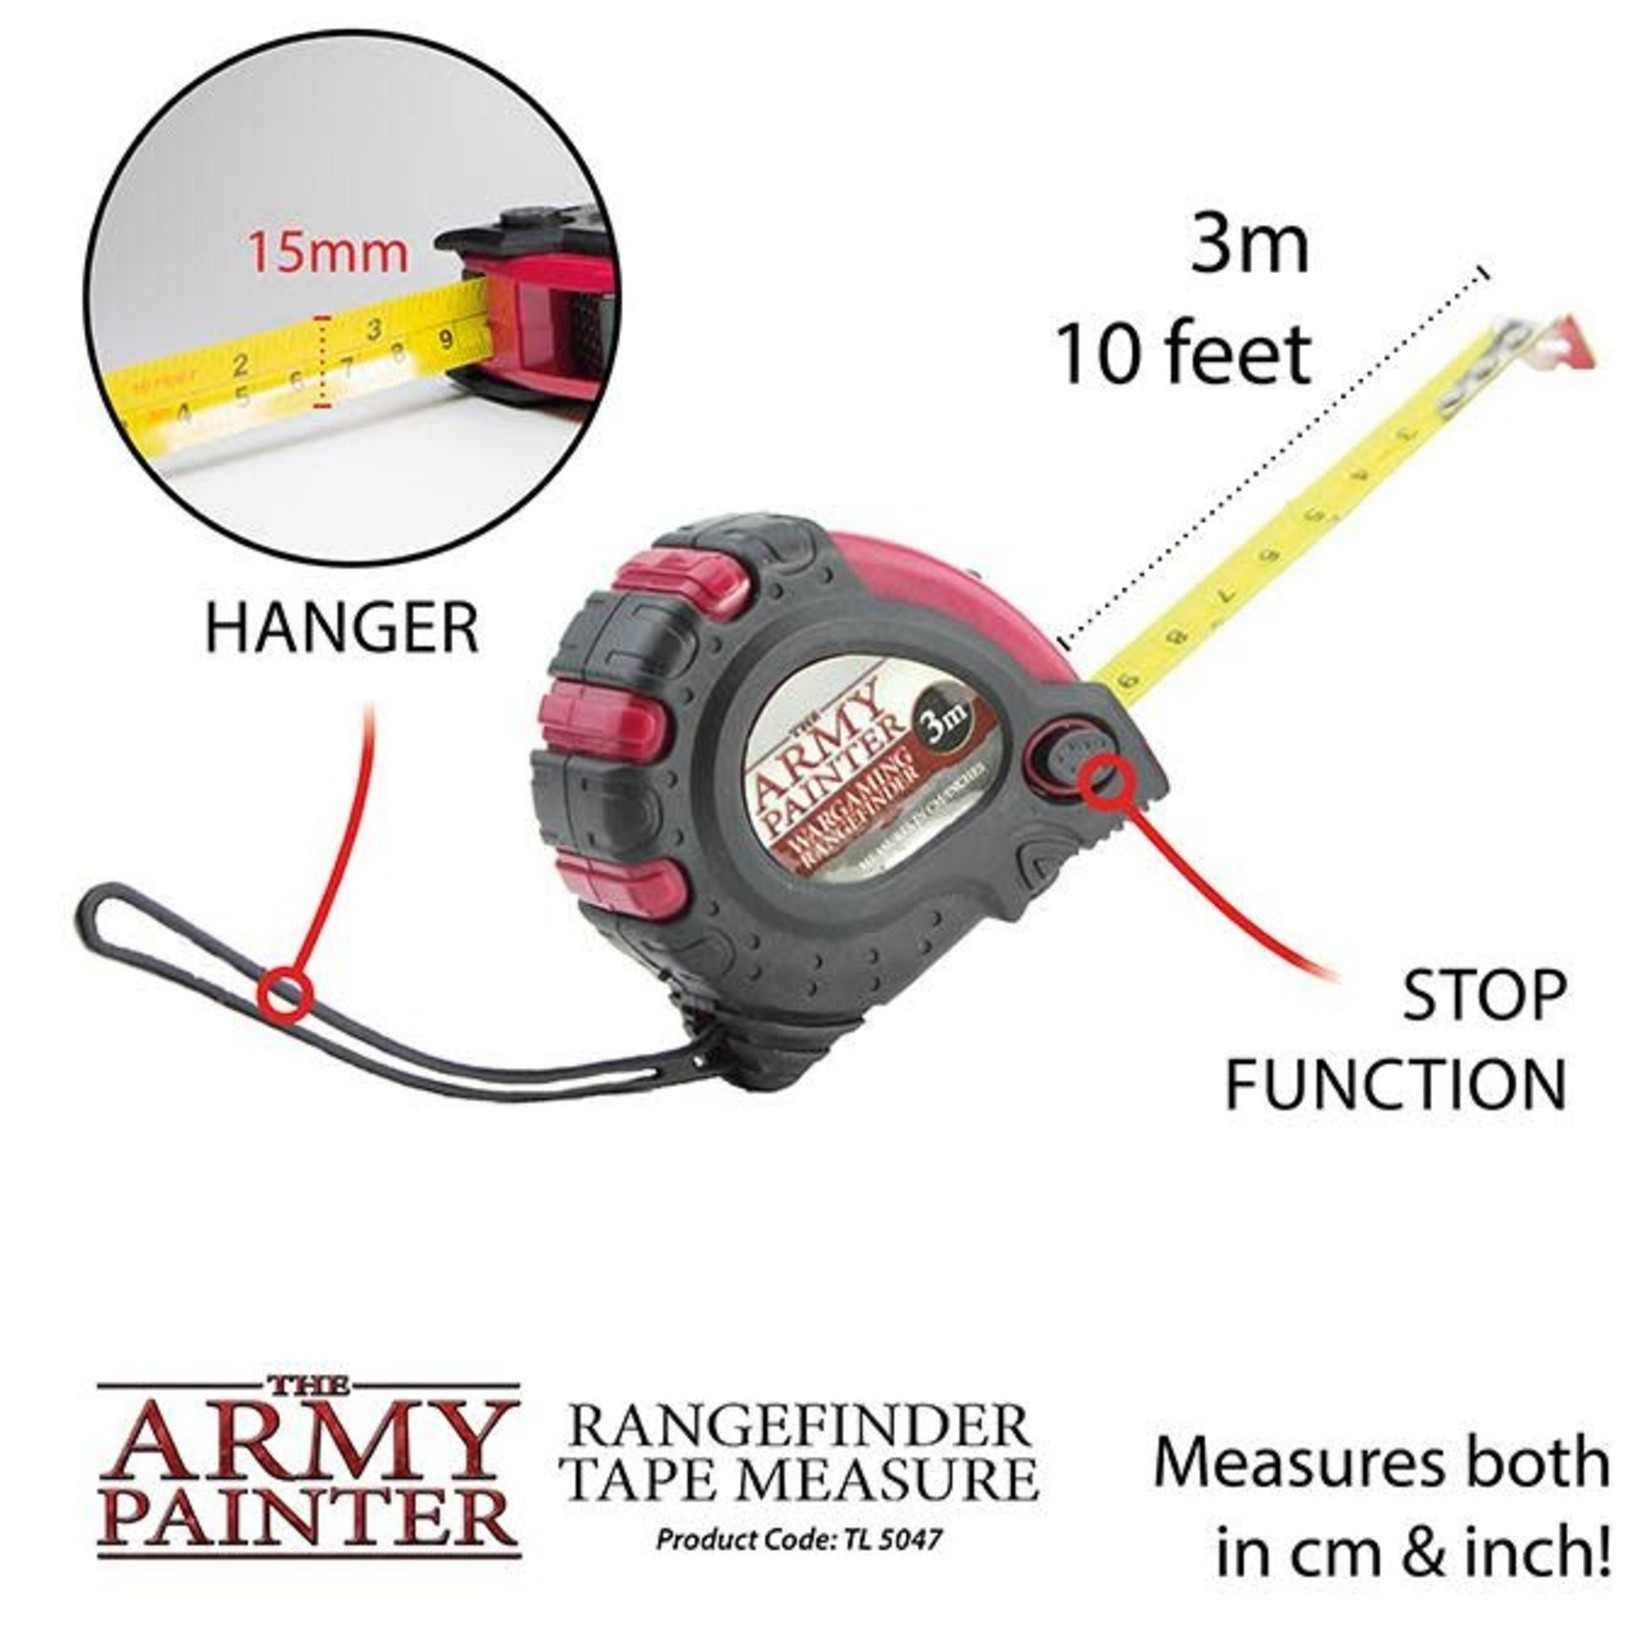 THE ARMY PAINTER RANGE FINDER TAPE MEASURE